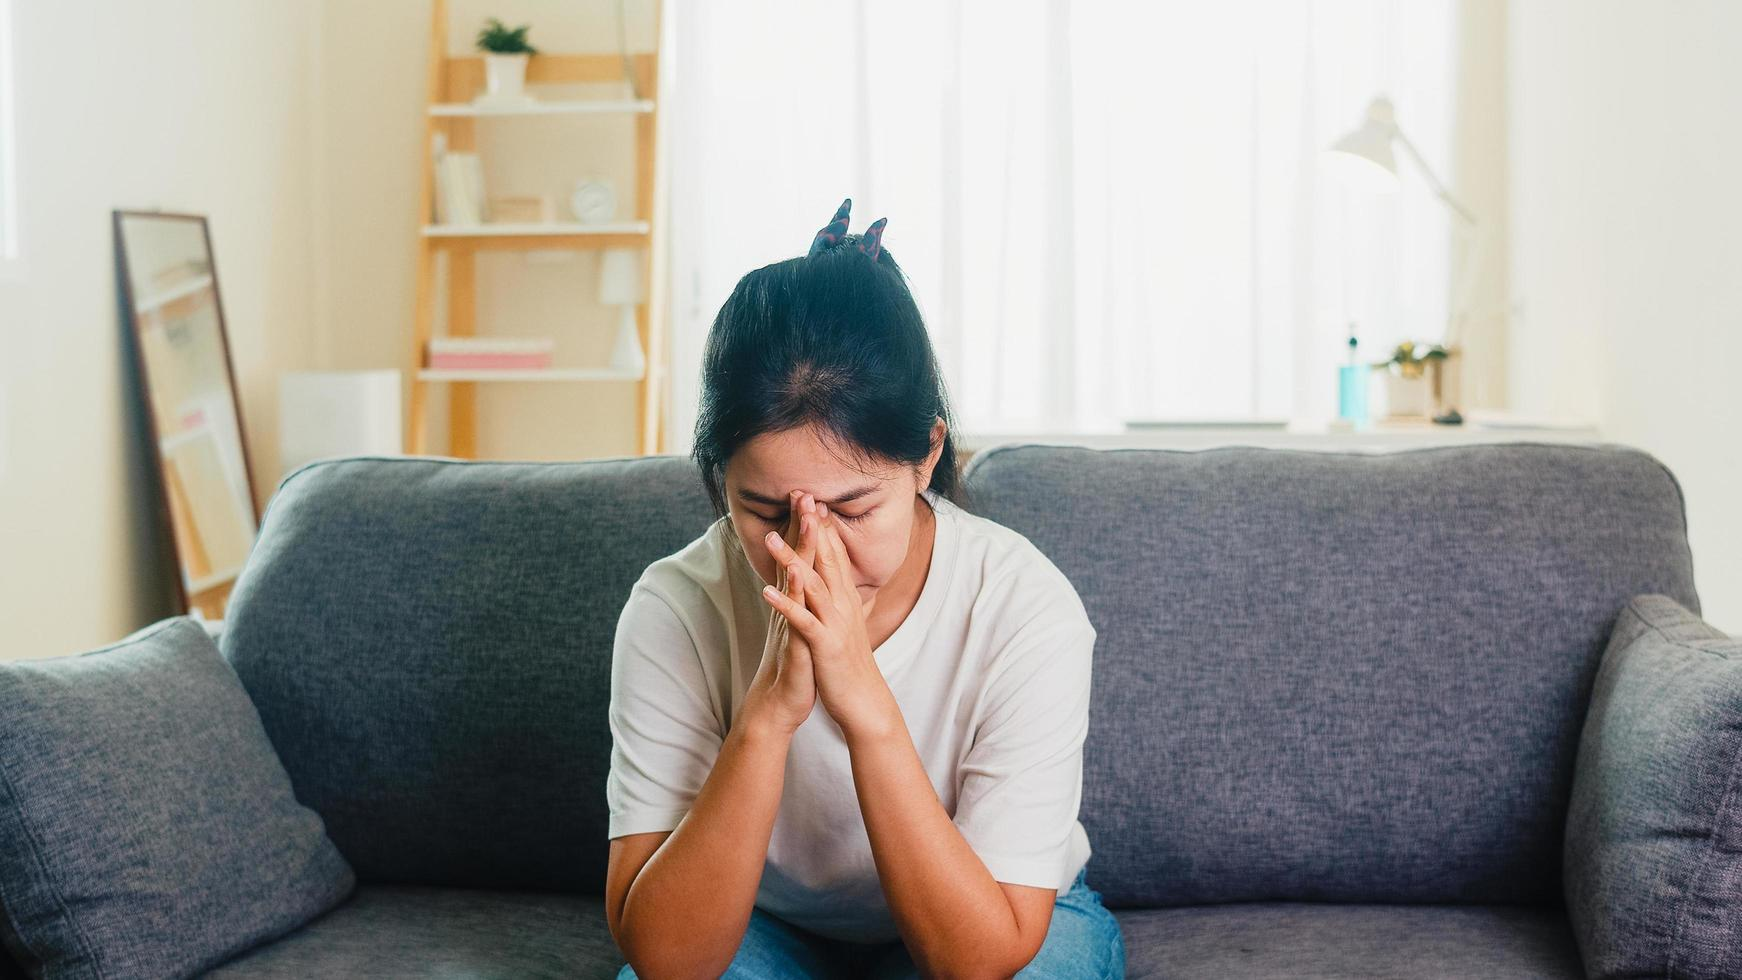 Asian businesswoman stressed with headache sitting on sofa in living room photo